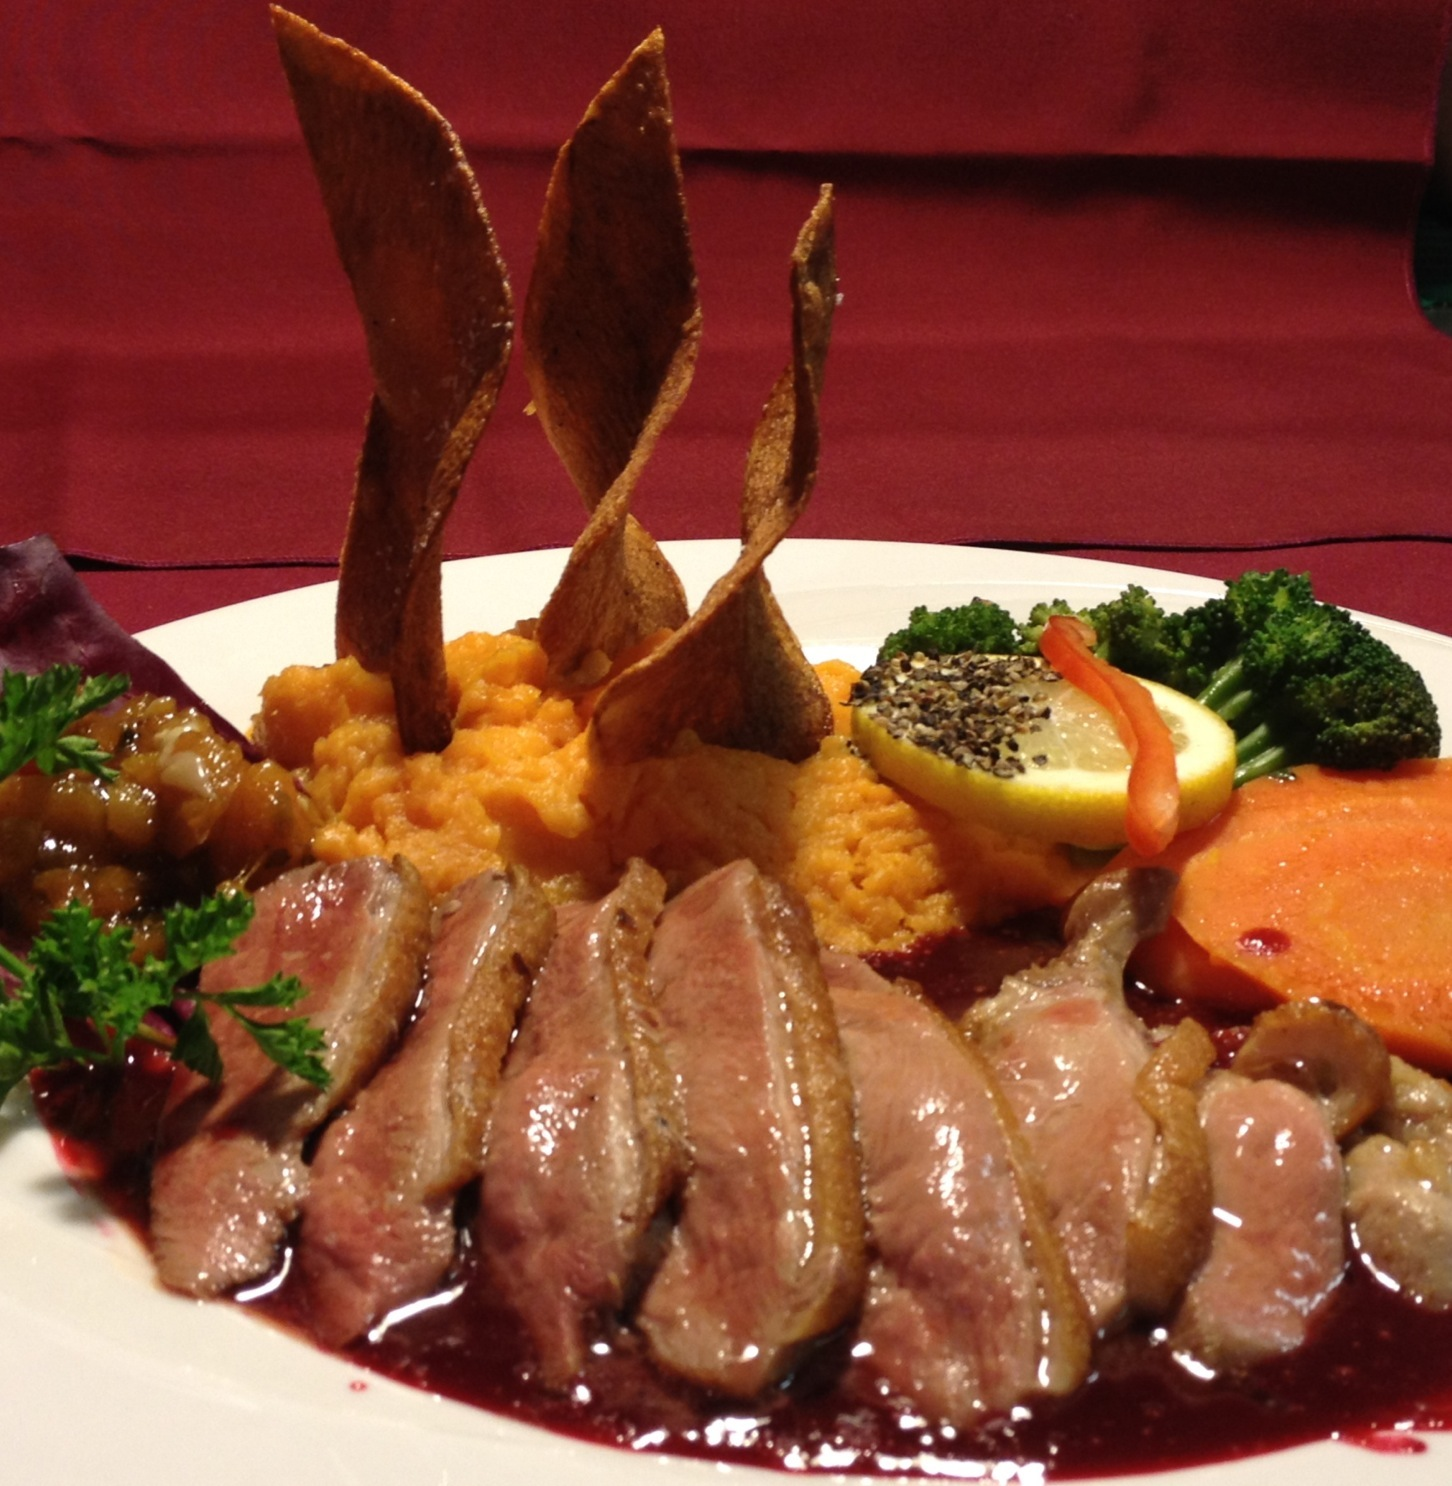 Pan-Seared Duck Breast with Port Wine-Raspberry Sauce, Mashed Sweet Potatoes